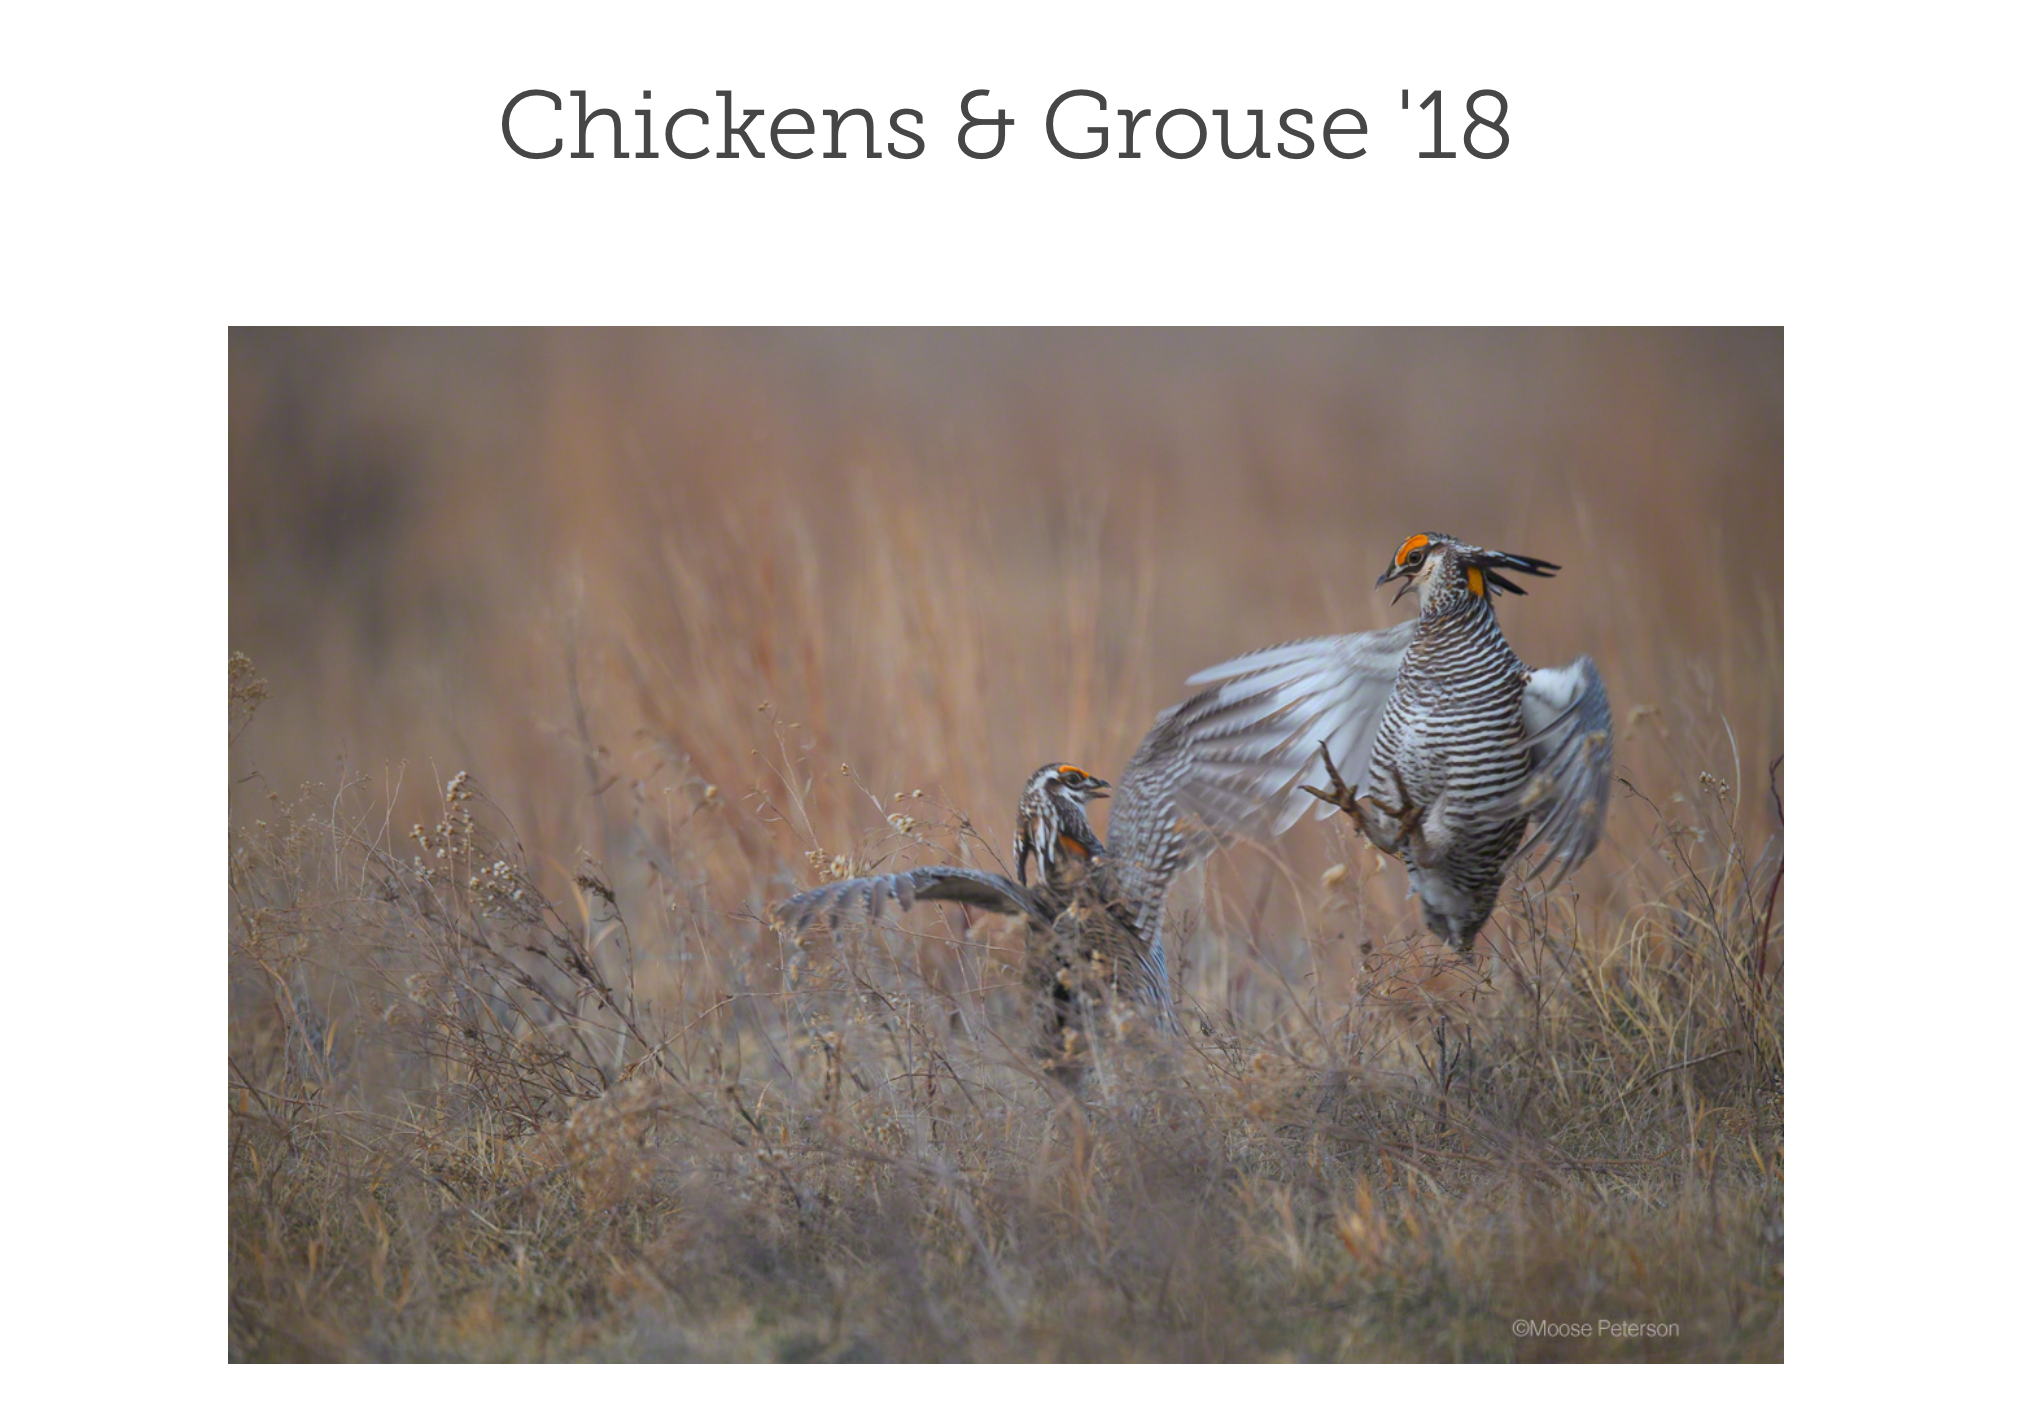 Chickens & Grouse Gallery